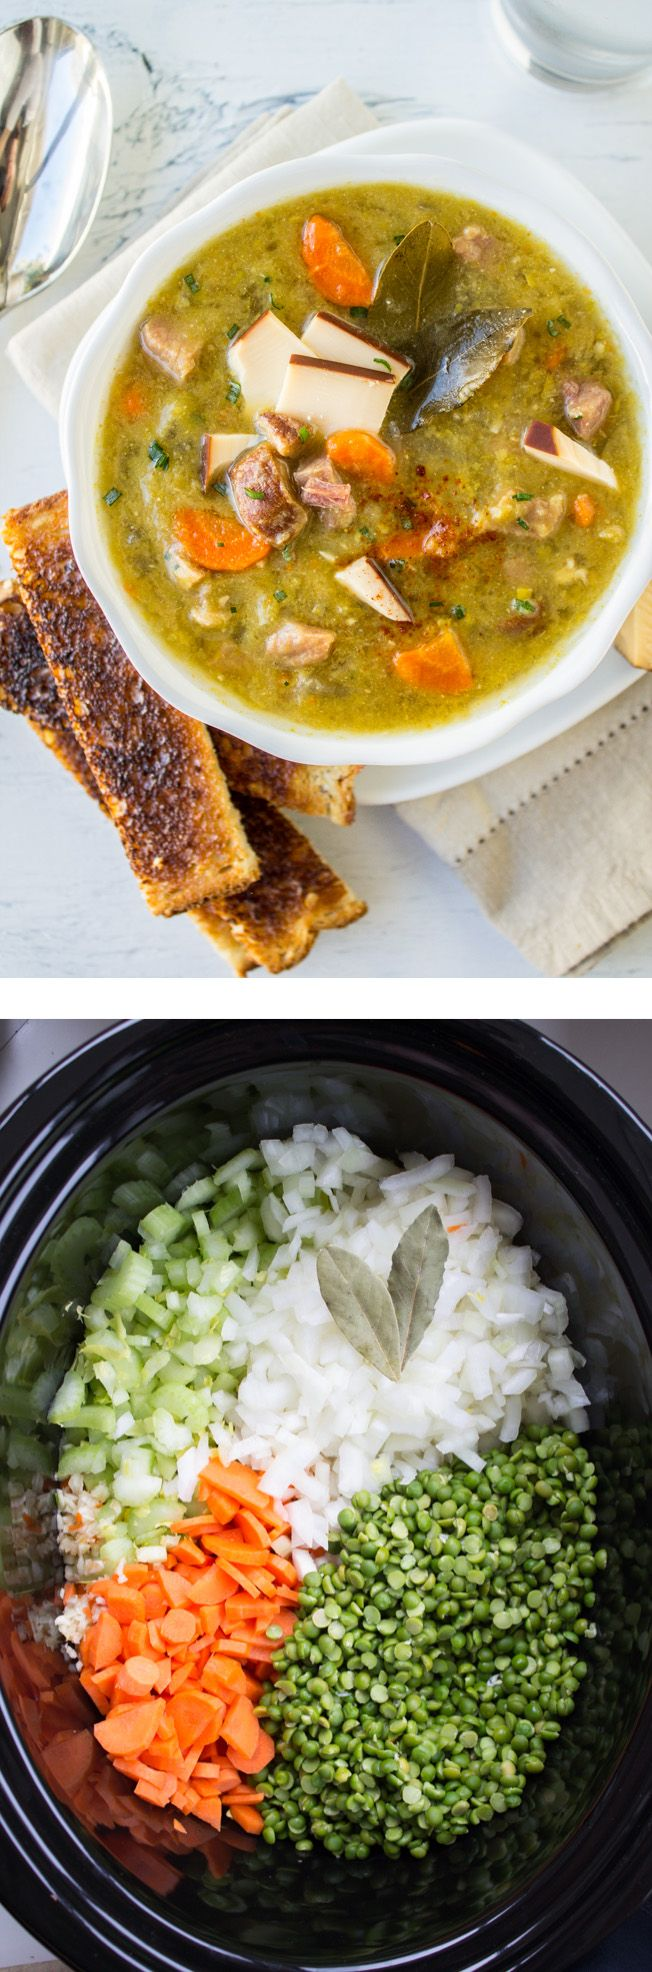 Split Pea Soup with Smoked Gouda (Slow Cooker) - from The Food Charlatan // Throw this in the slow cooker and forget about it! You will not believe how awesome split pea is with gouda.